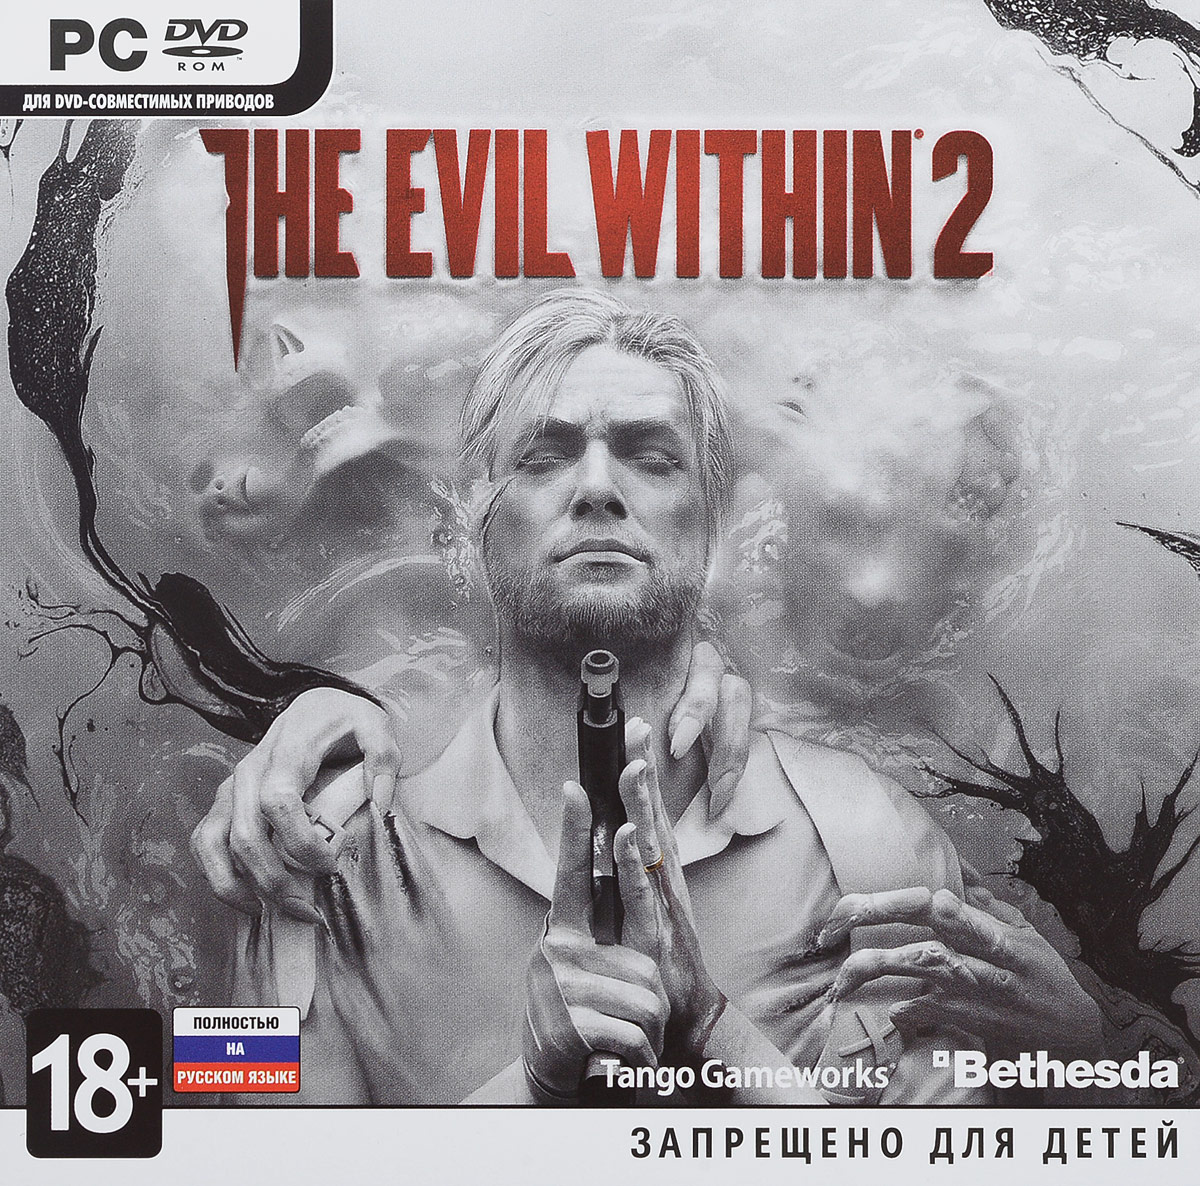 The Evil Within 2 (код загрузки, без диска), Tango Gameworks